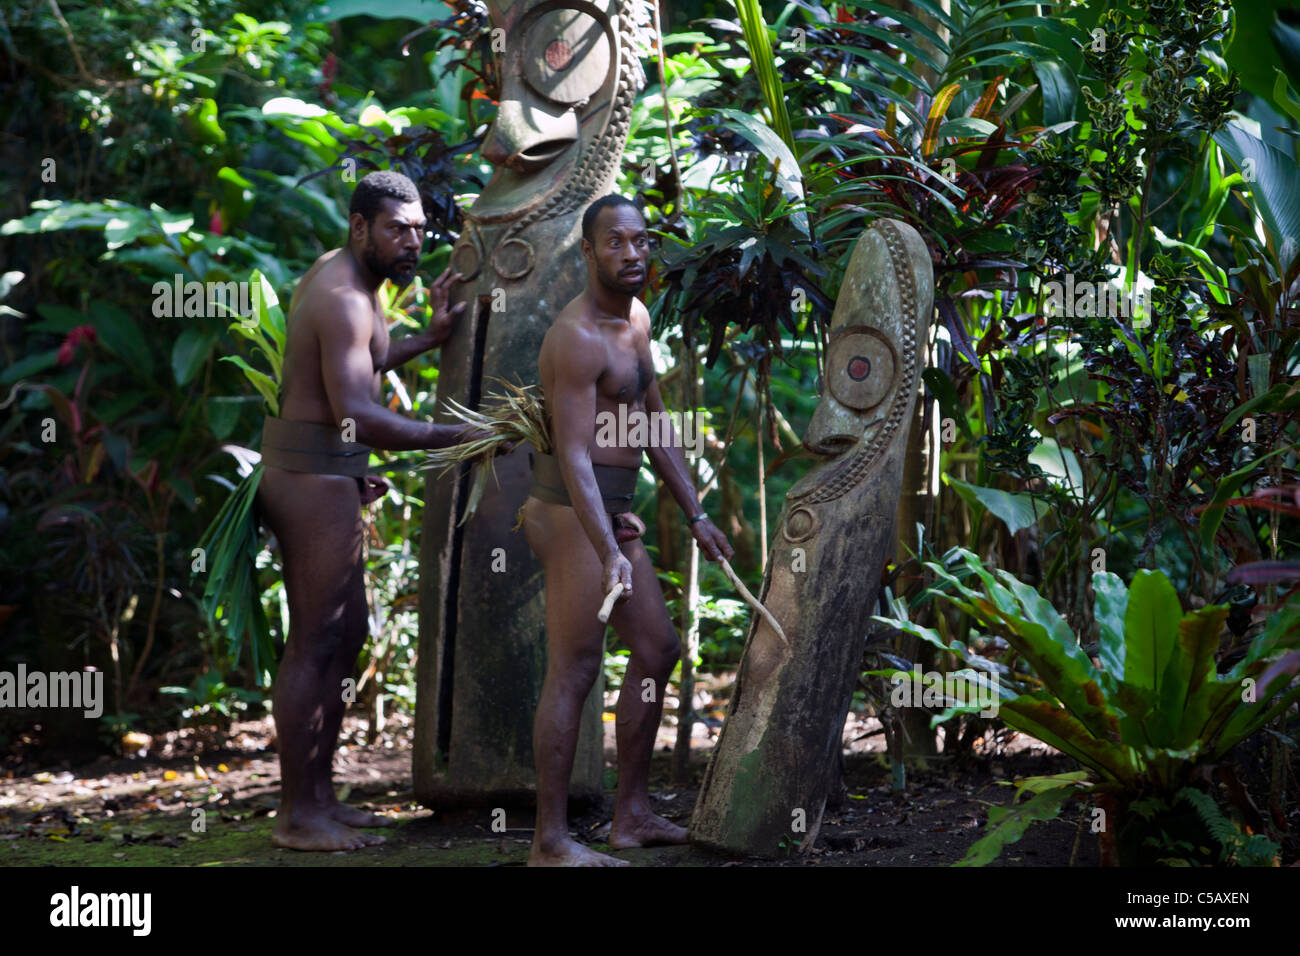 Local ceremonies performed by the indigenous people of Vanuatu - Stock Image